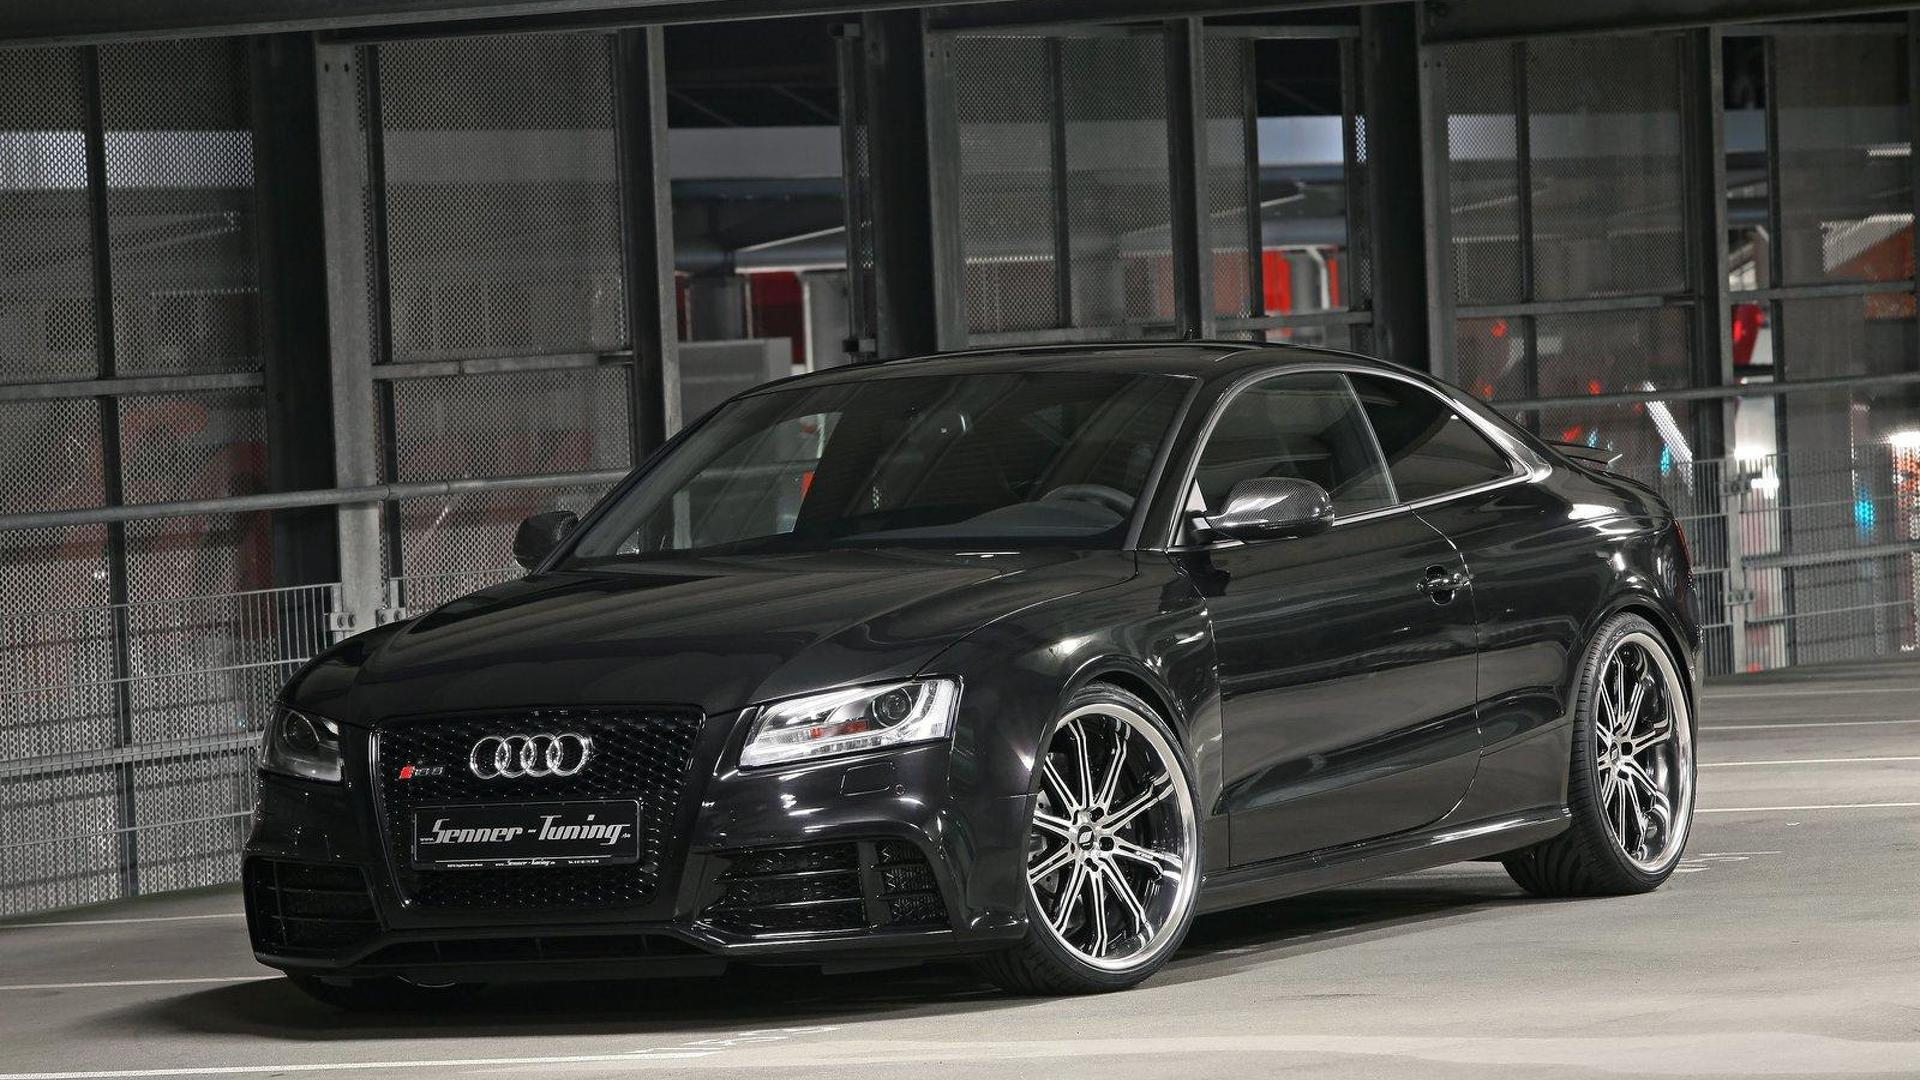 500 horsepower audi rs5 by senner tuning. Black Bedroom Furniture Sets. Home Design Ideas